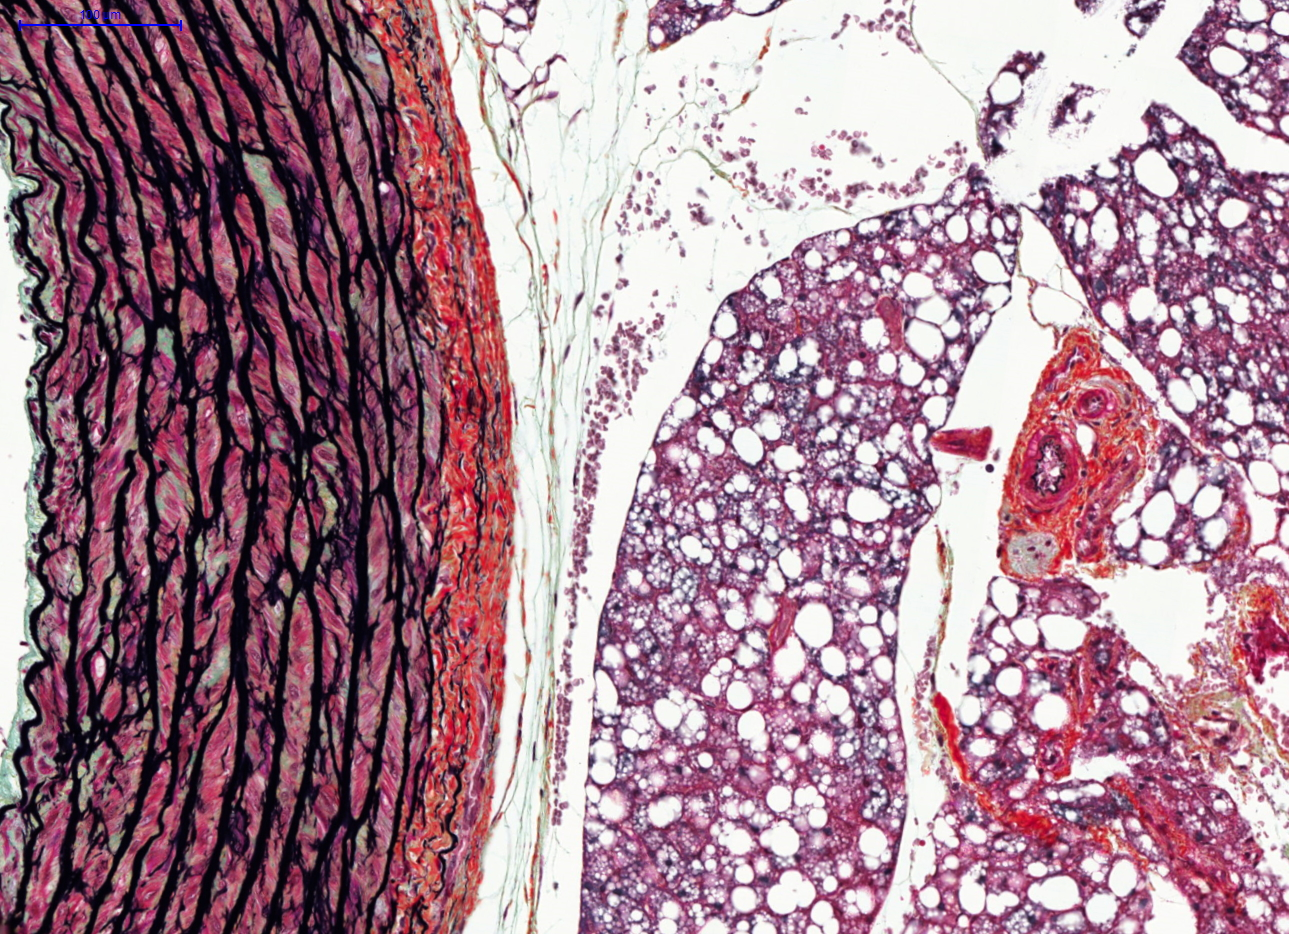 Movat Pentachrome stain in the rat lung.